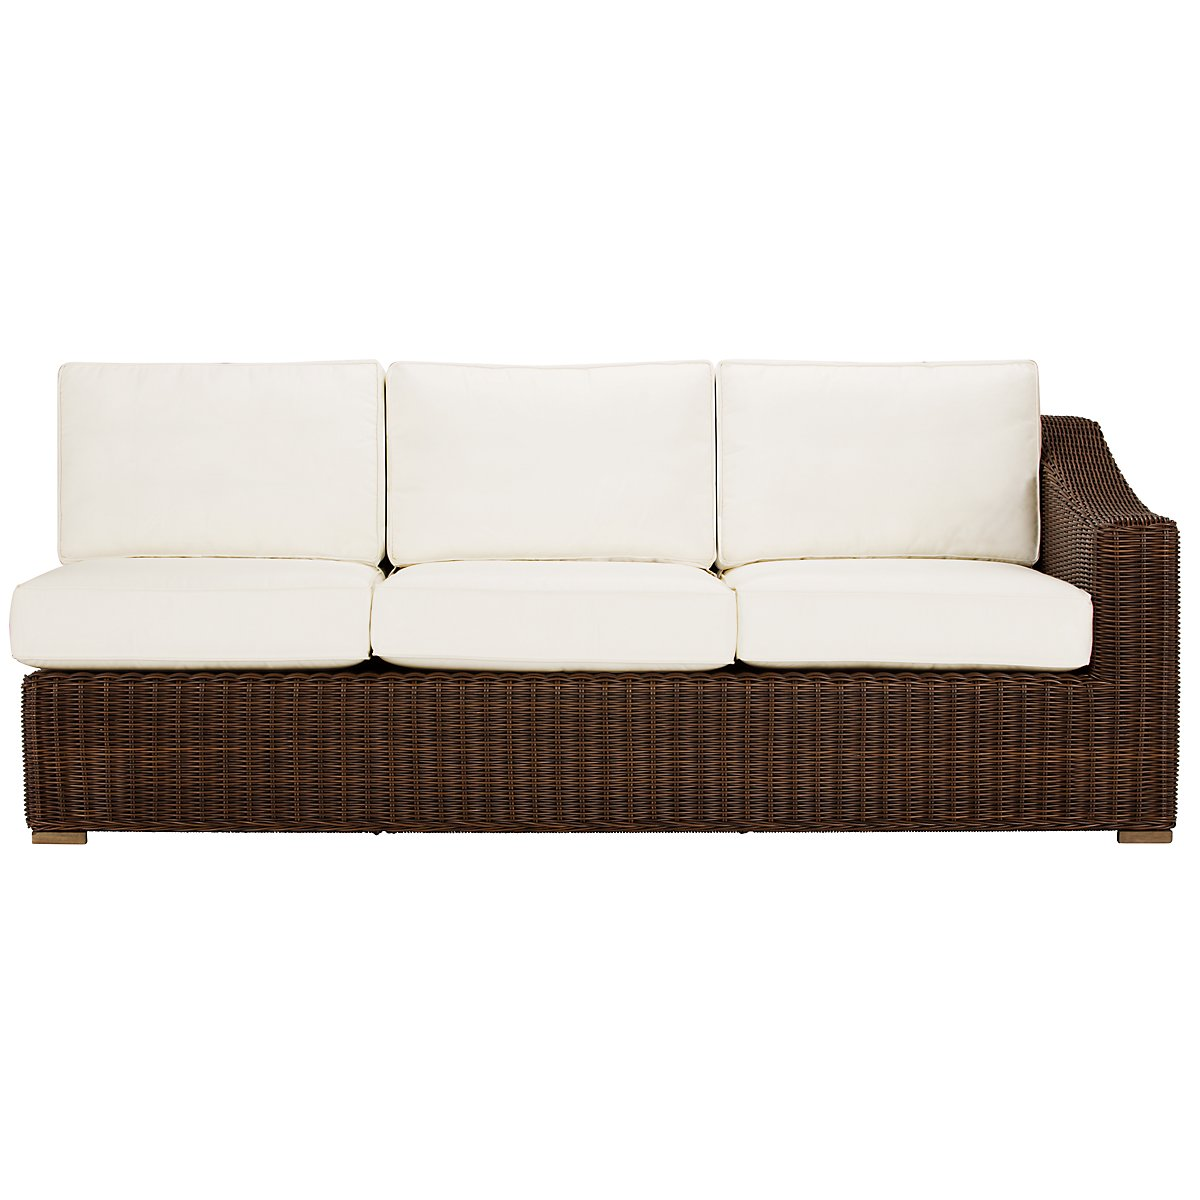 City furniture canyon3 dk brown large two arm sectional for Sofa with only one arm